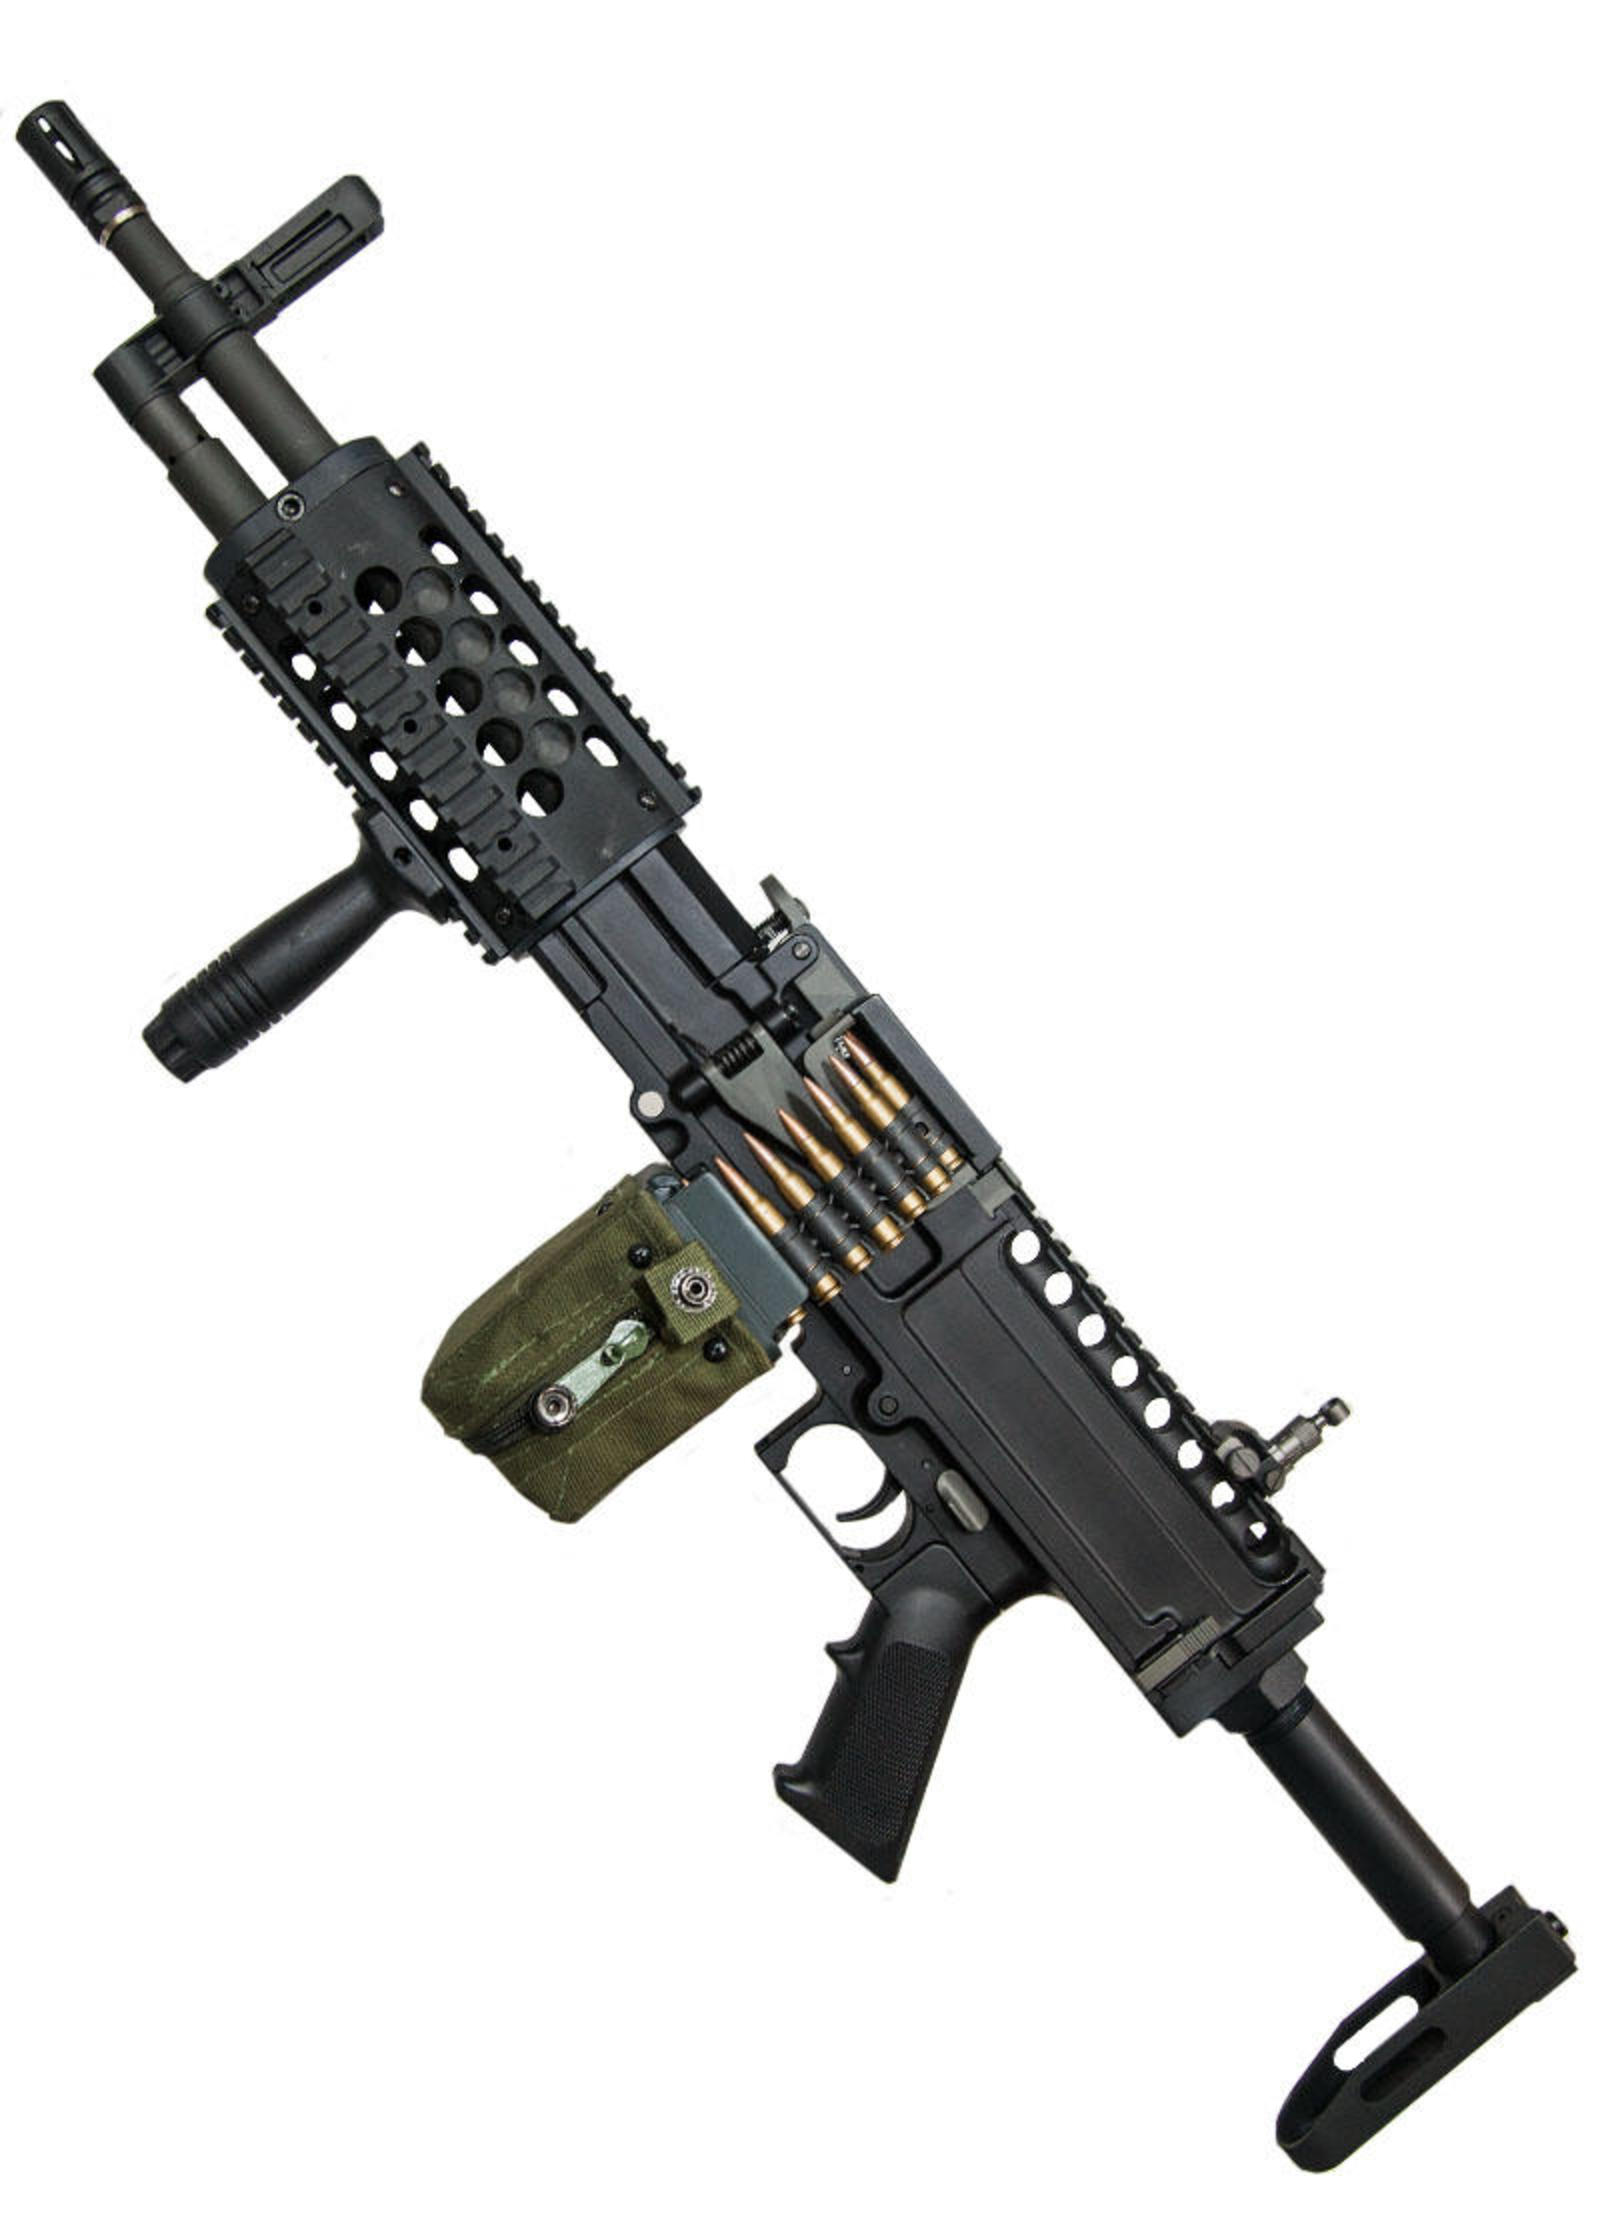 Stoner lmg the harbinger wiki fandom powered by wikia the stoner lmg is a light machine gun system developed by eugene stoner and manufactured by knights armament company thecheapjerseys Choice Image